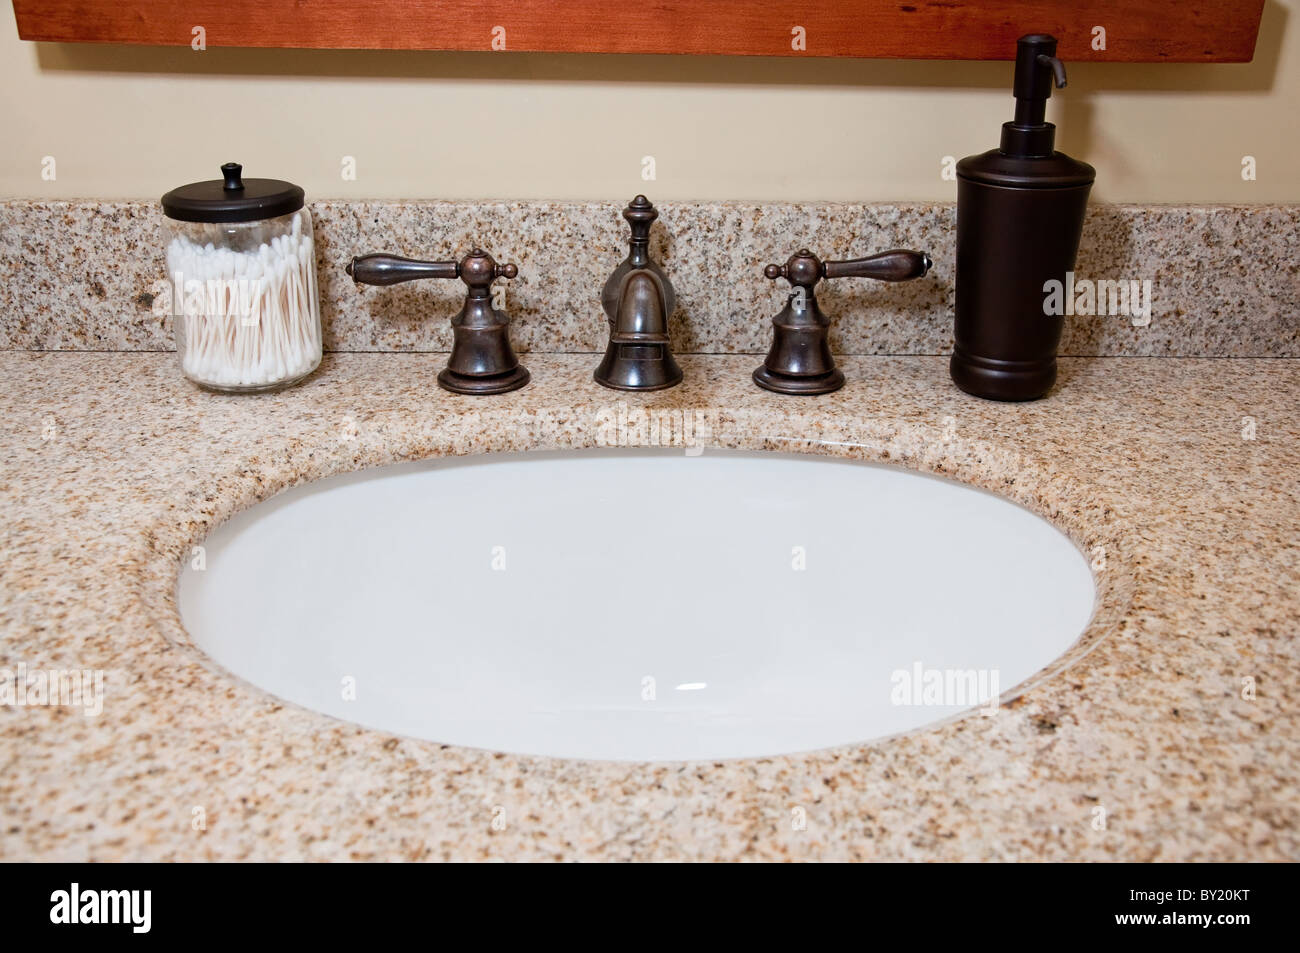 Bathroom sink and faucet with cotton swabs and soap dispenser. - Stock Image